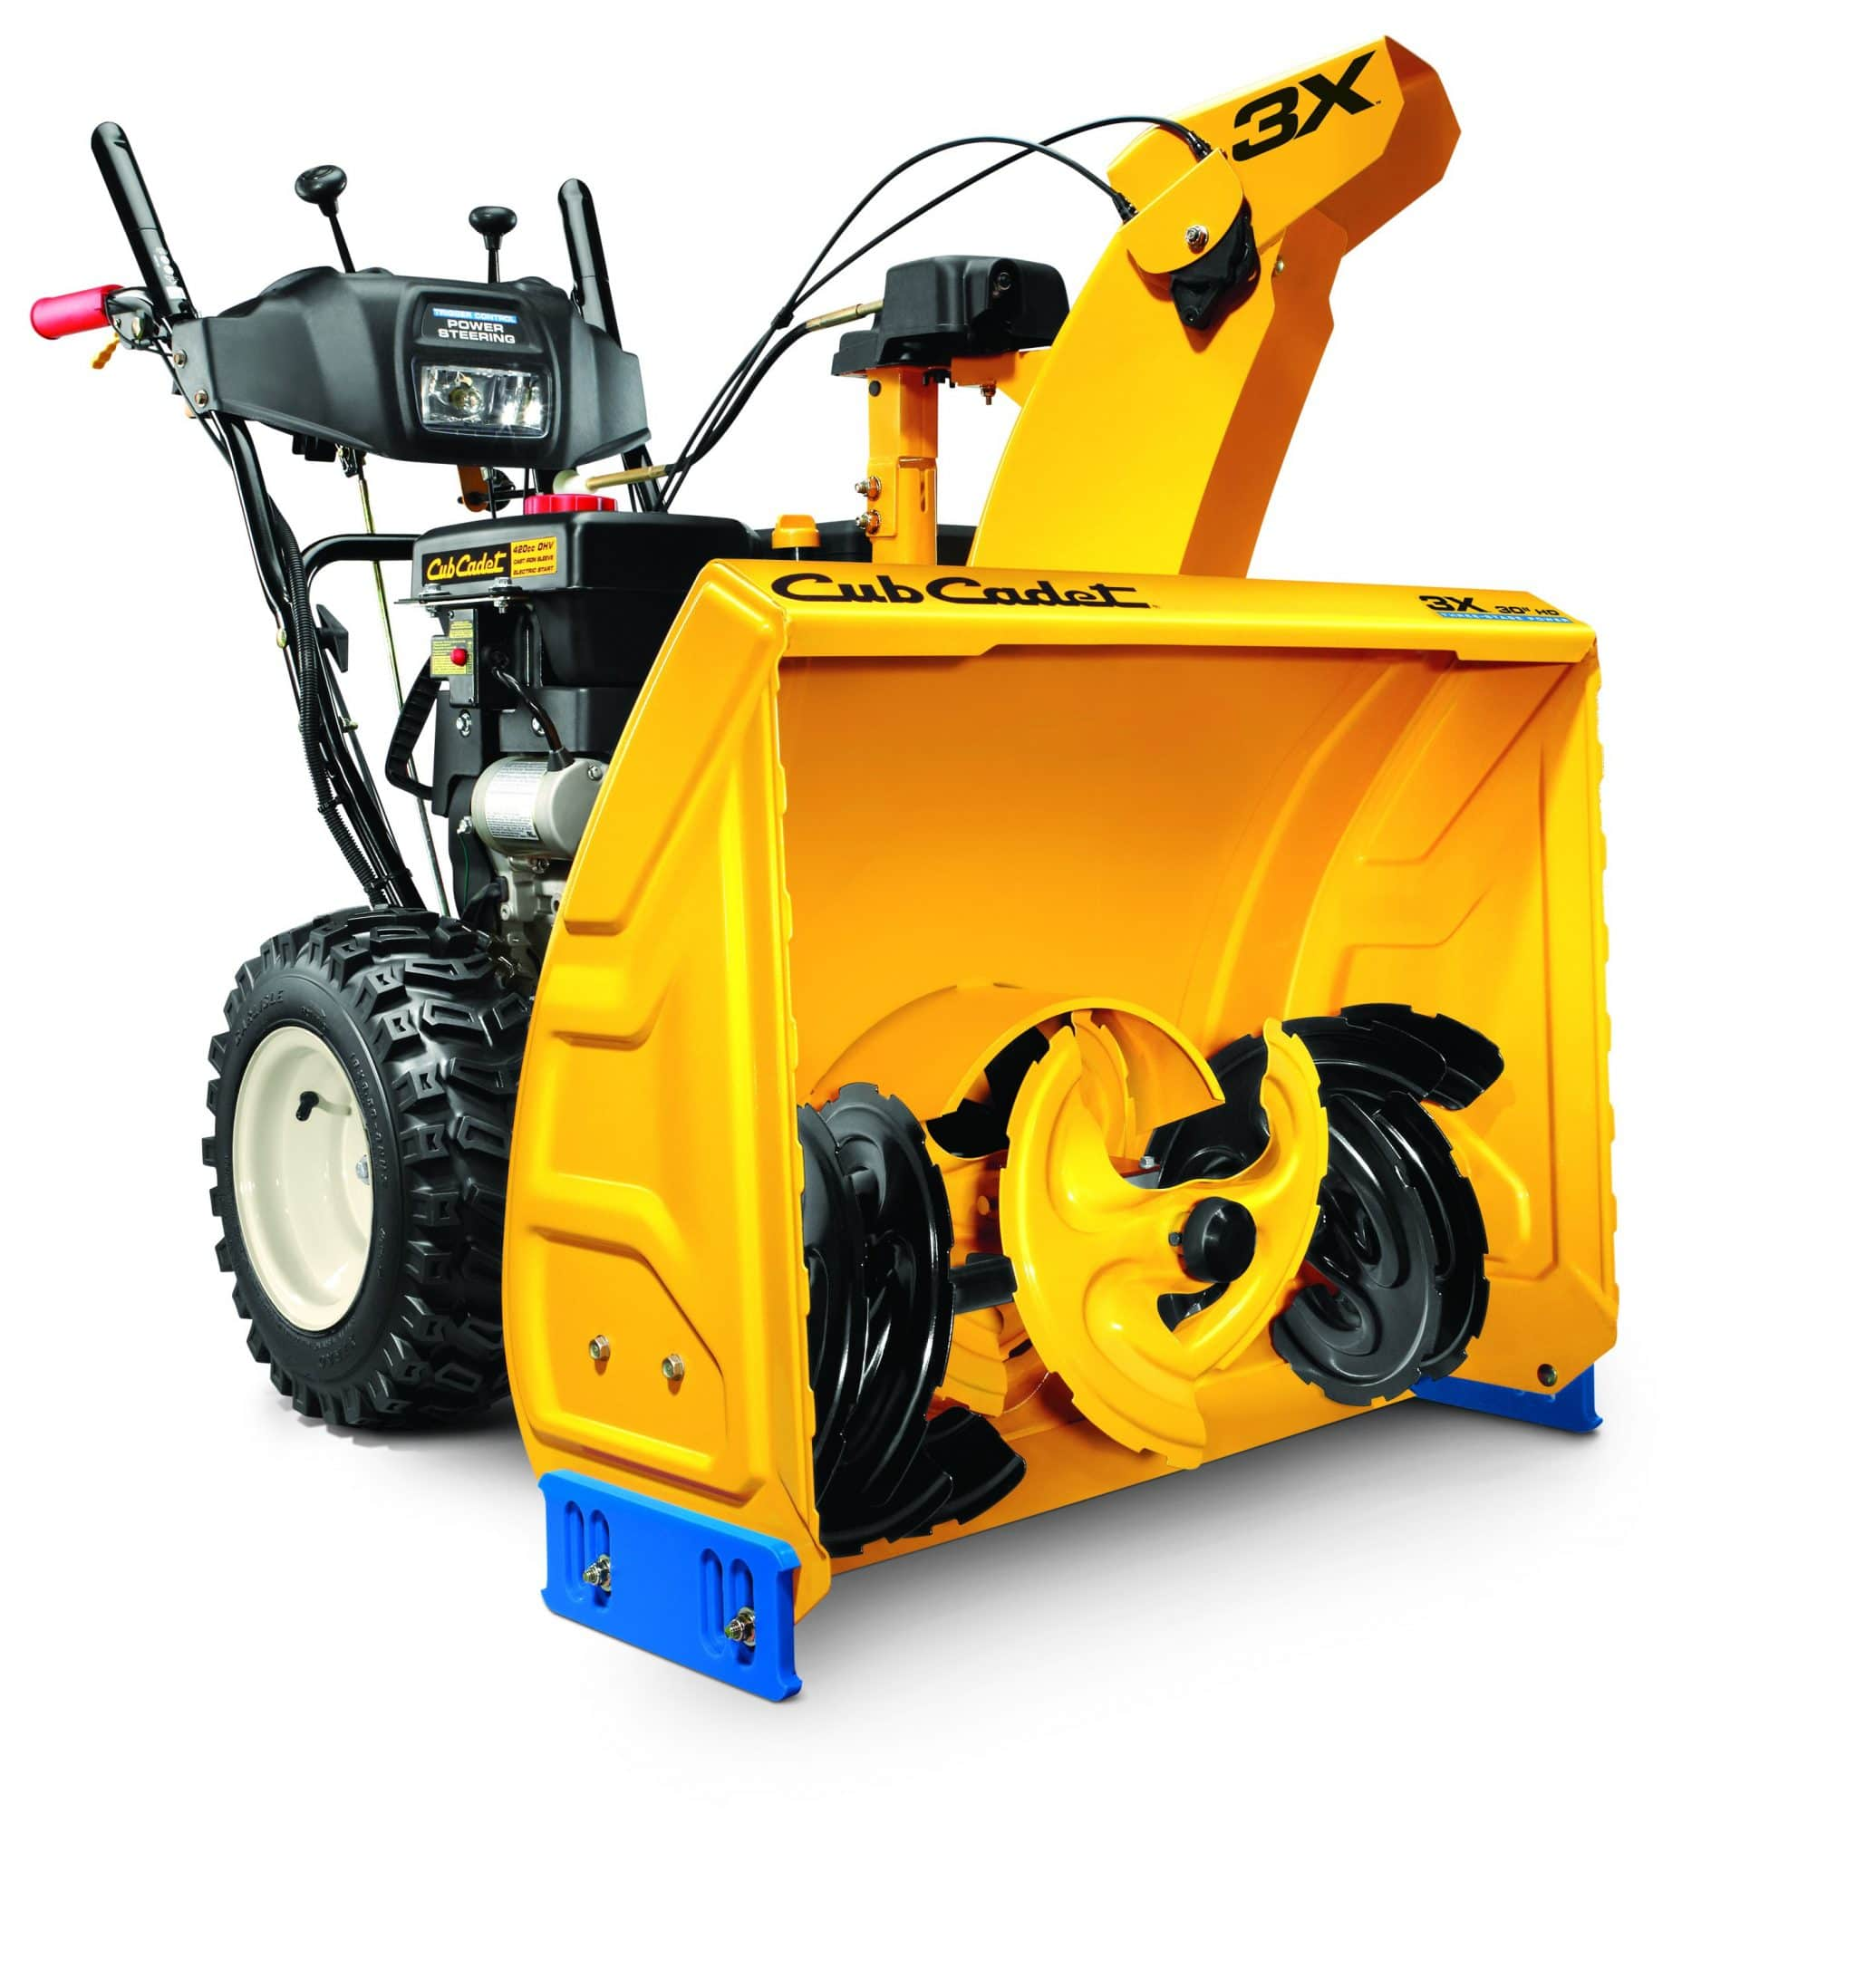 3X_Three Stage_Product_30?resize=300%2C160 2016 troy bilt snow blowers what's new and exciting  at fashall.co